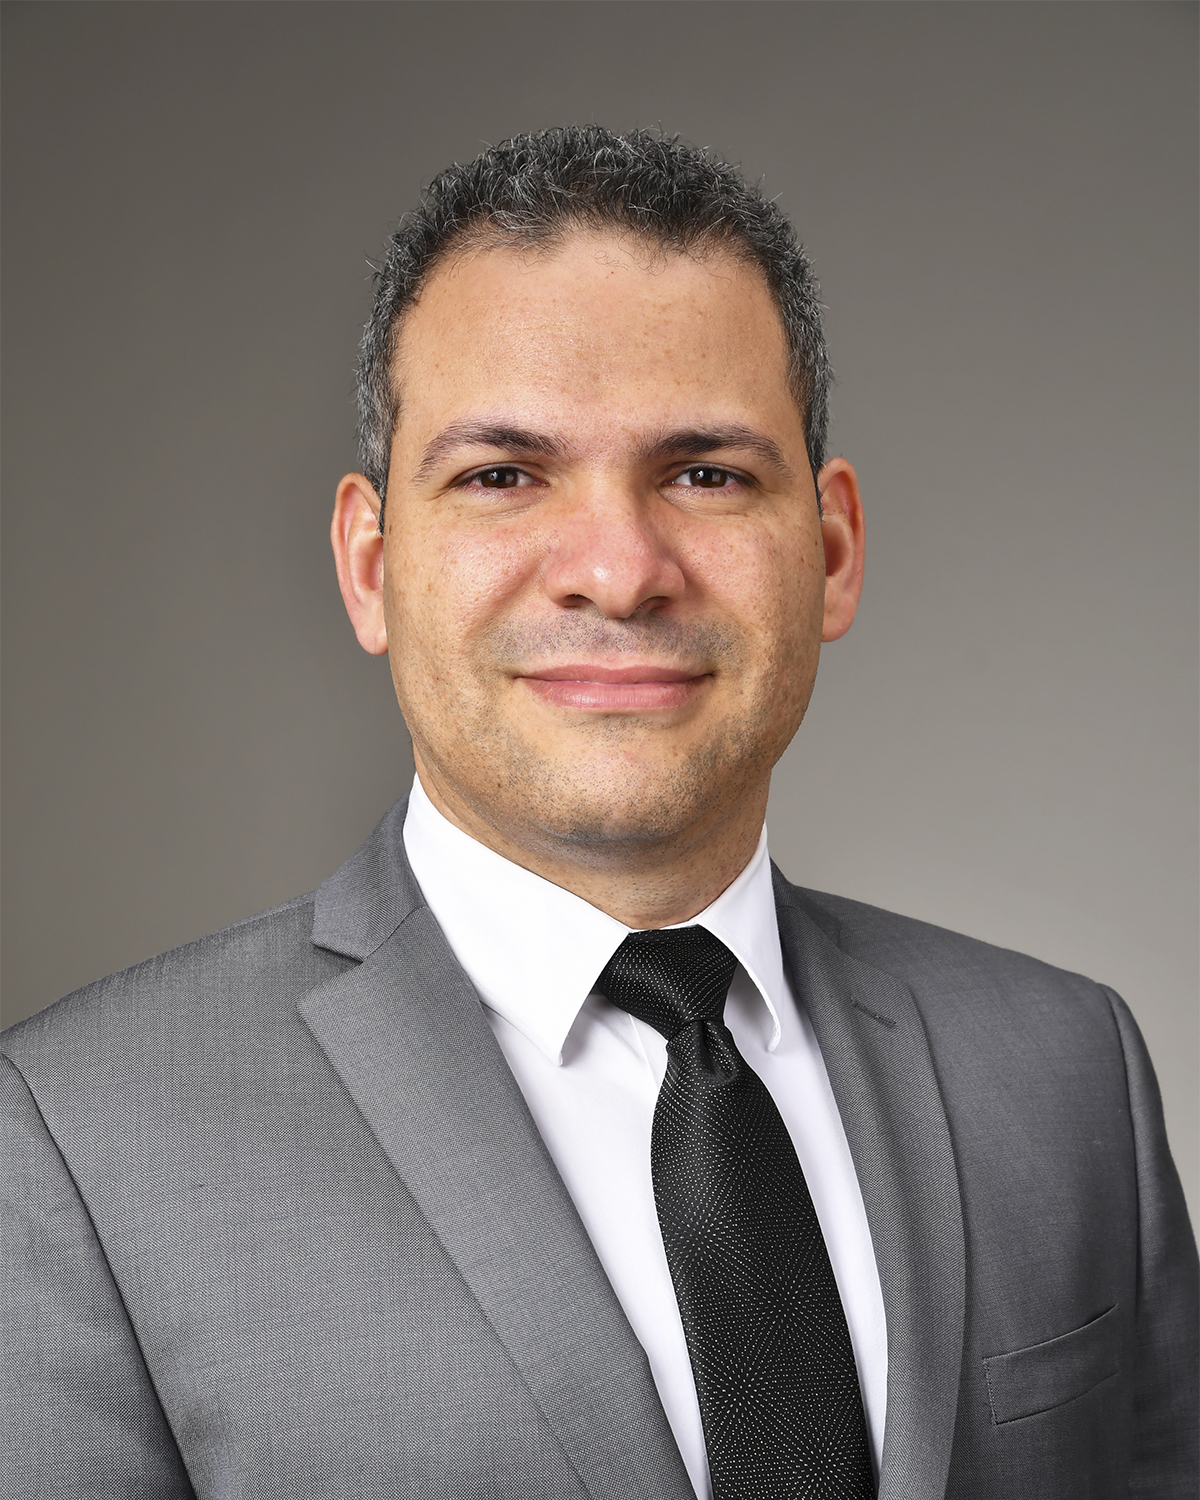 image from Welcome Cardiothoracic Surgeon, Dr. Juan Abreu